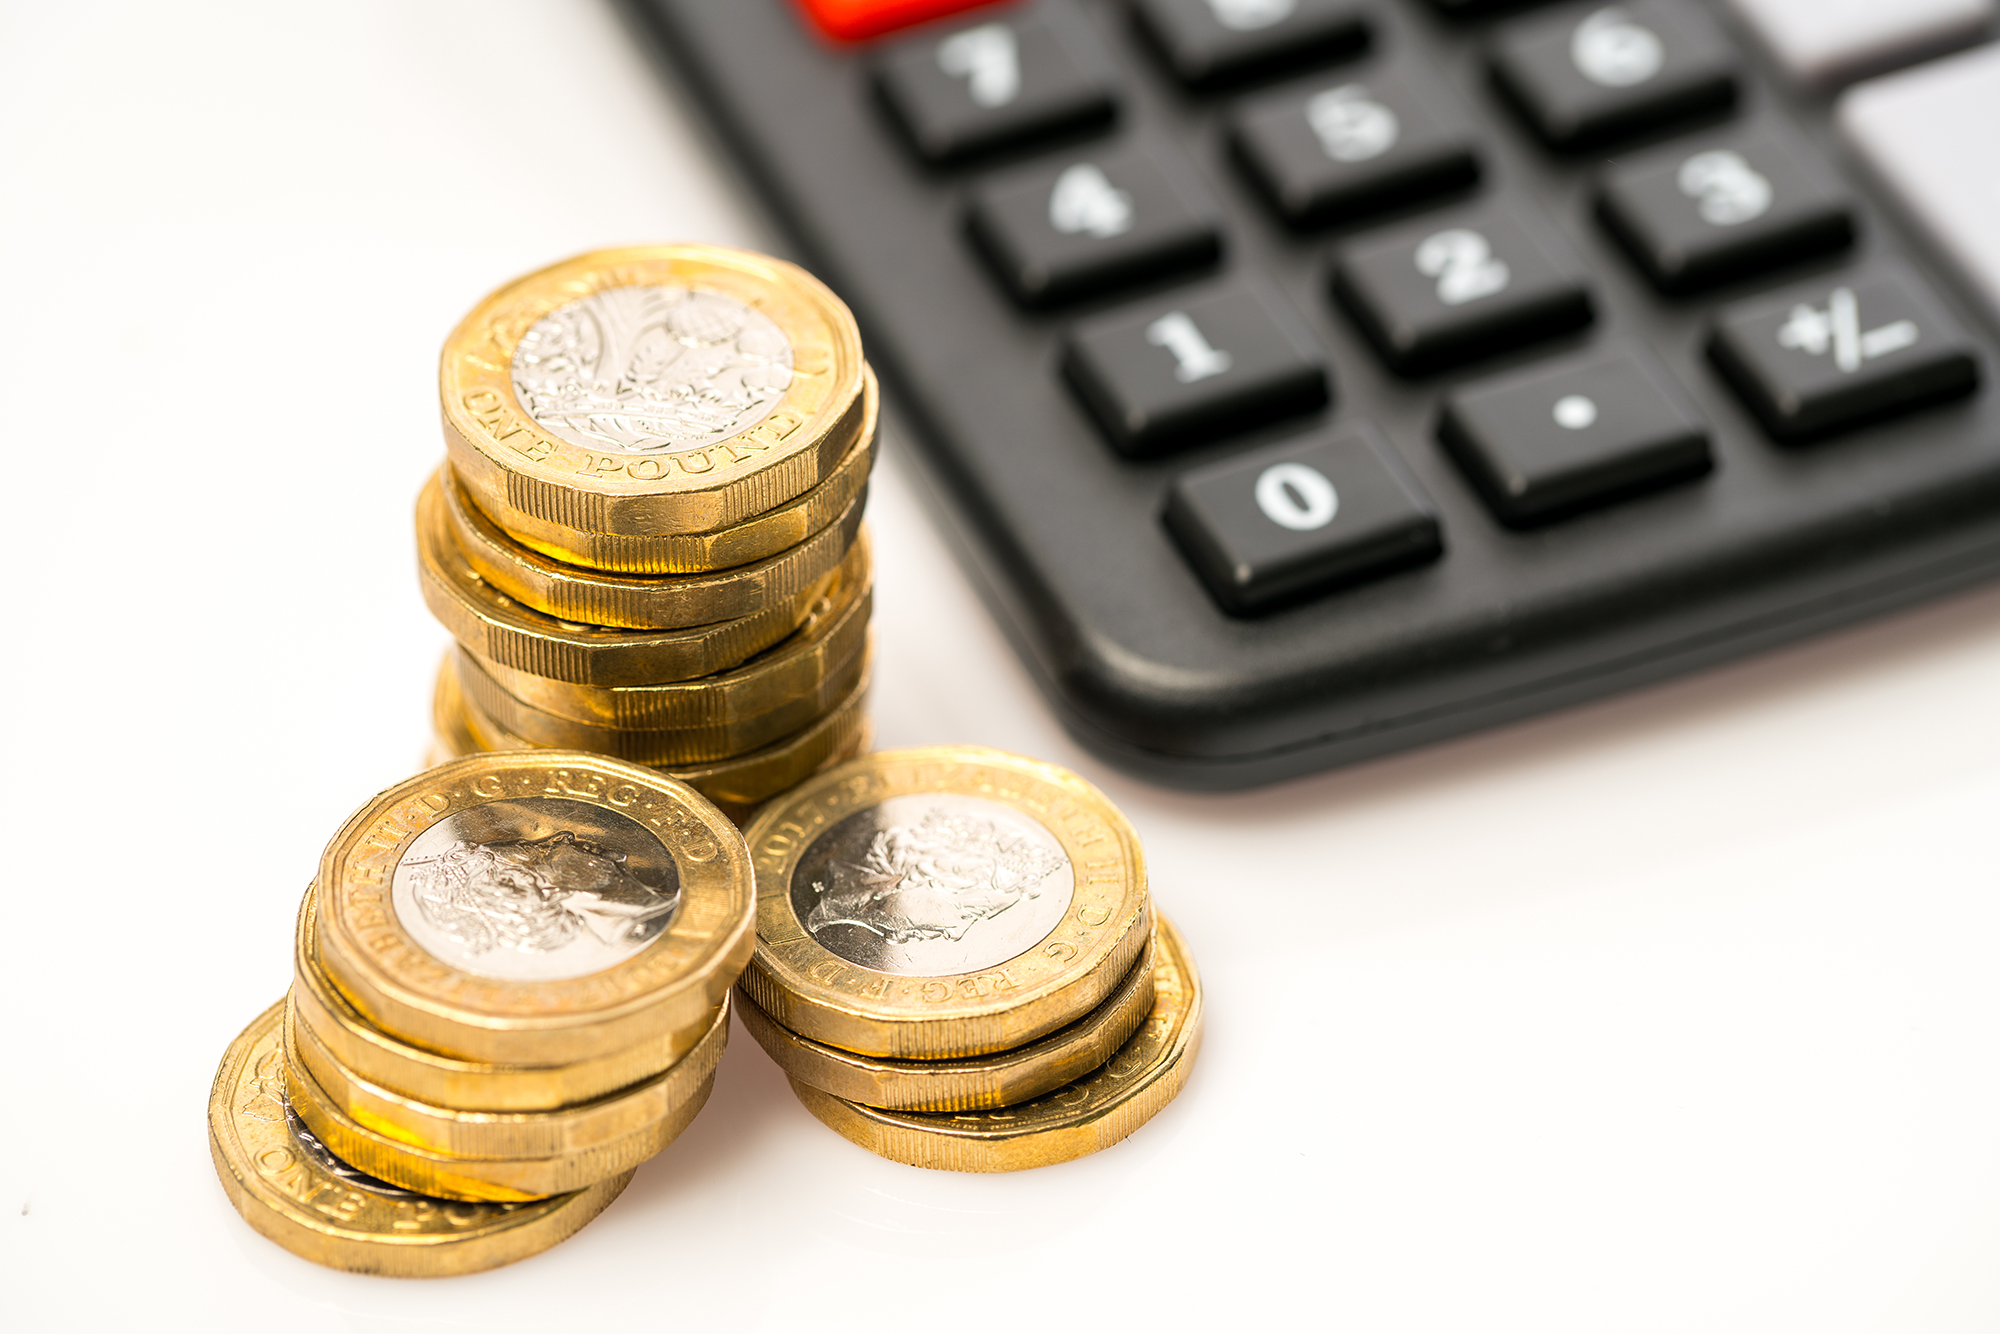 Pound coins next to calculator. (Image: Shutterstock)